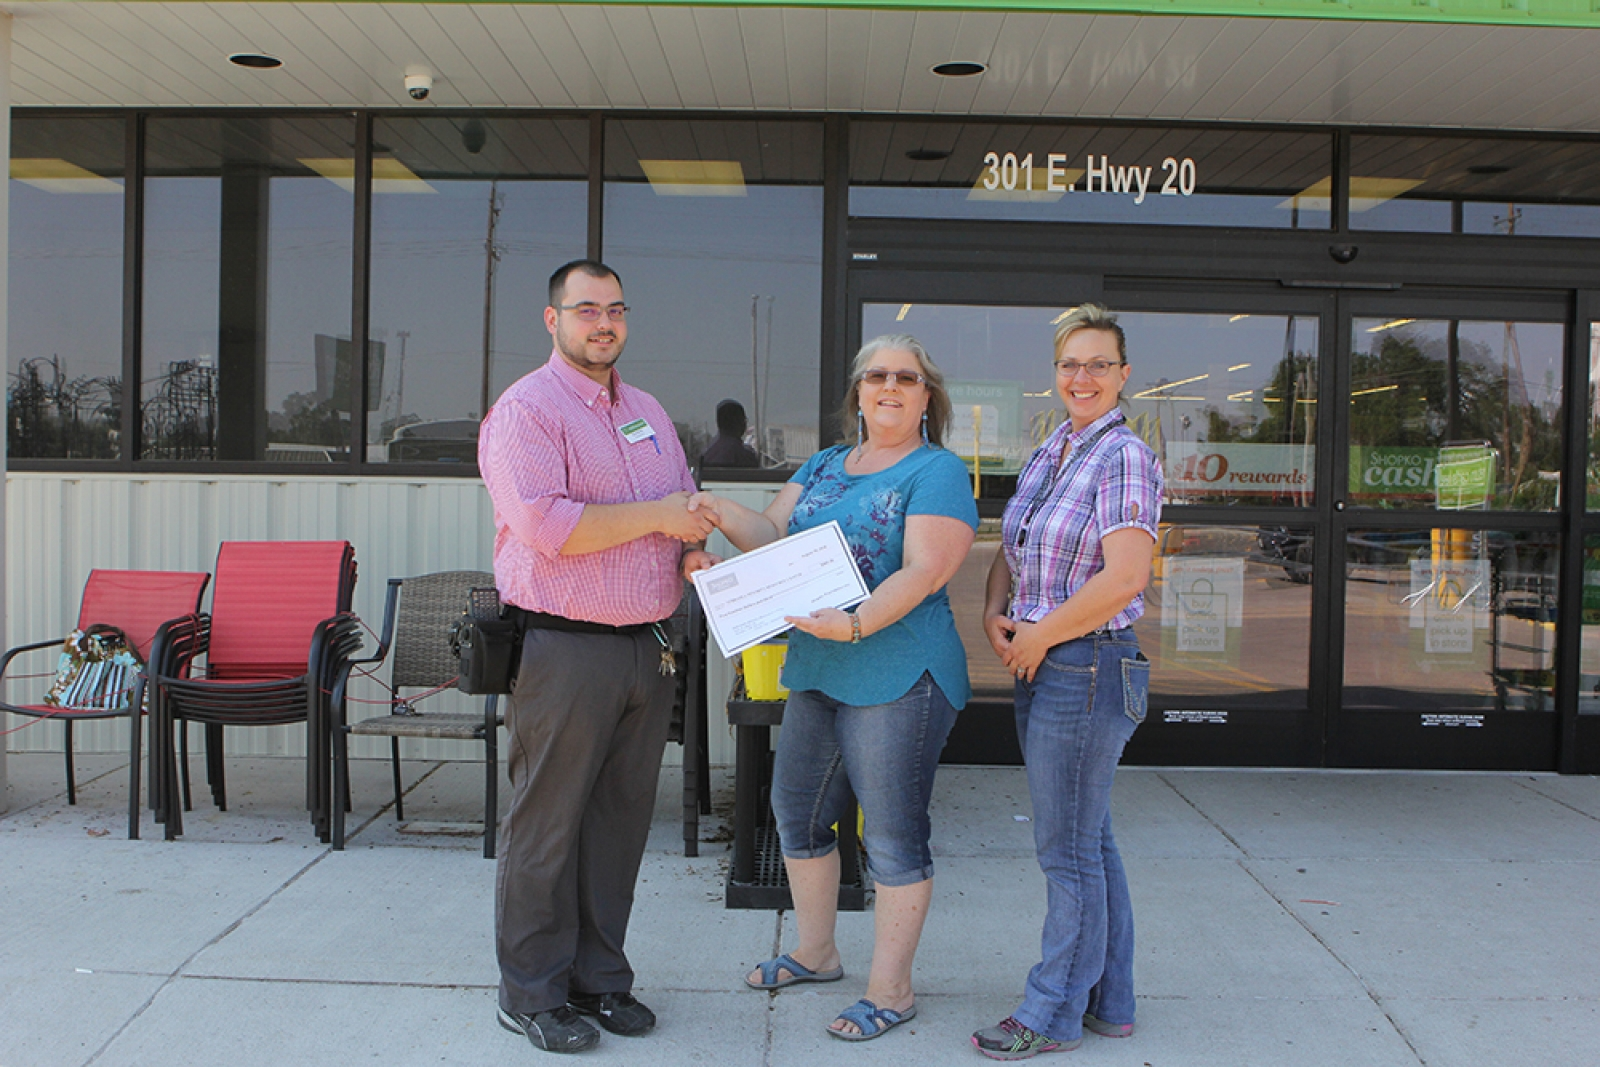 Shopko Manager Gordon Thiessen, left, and Althea Mitchell-Thayer, right, present Juli Ann Harvey, center, with a check for $500 from the Shopko Foundation on Friday, August 10.